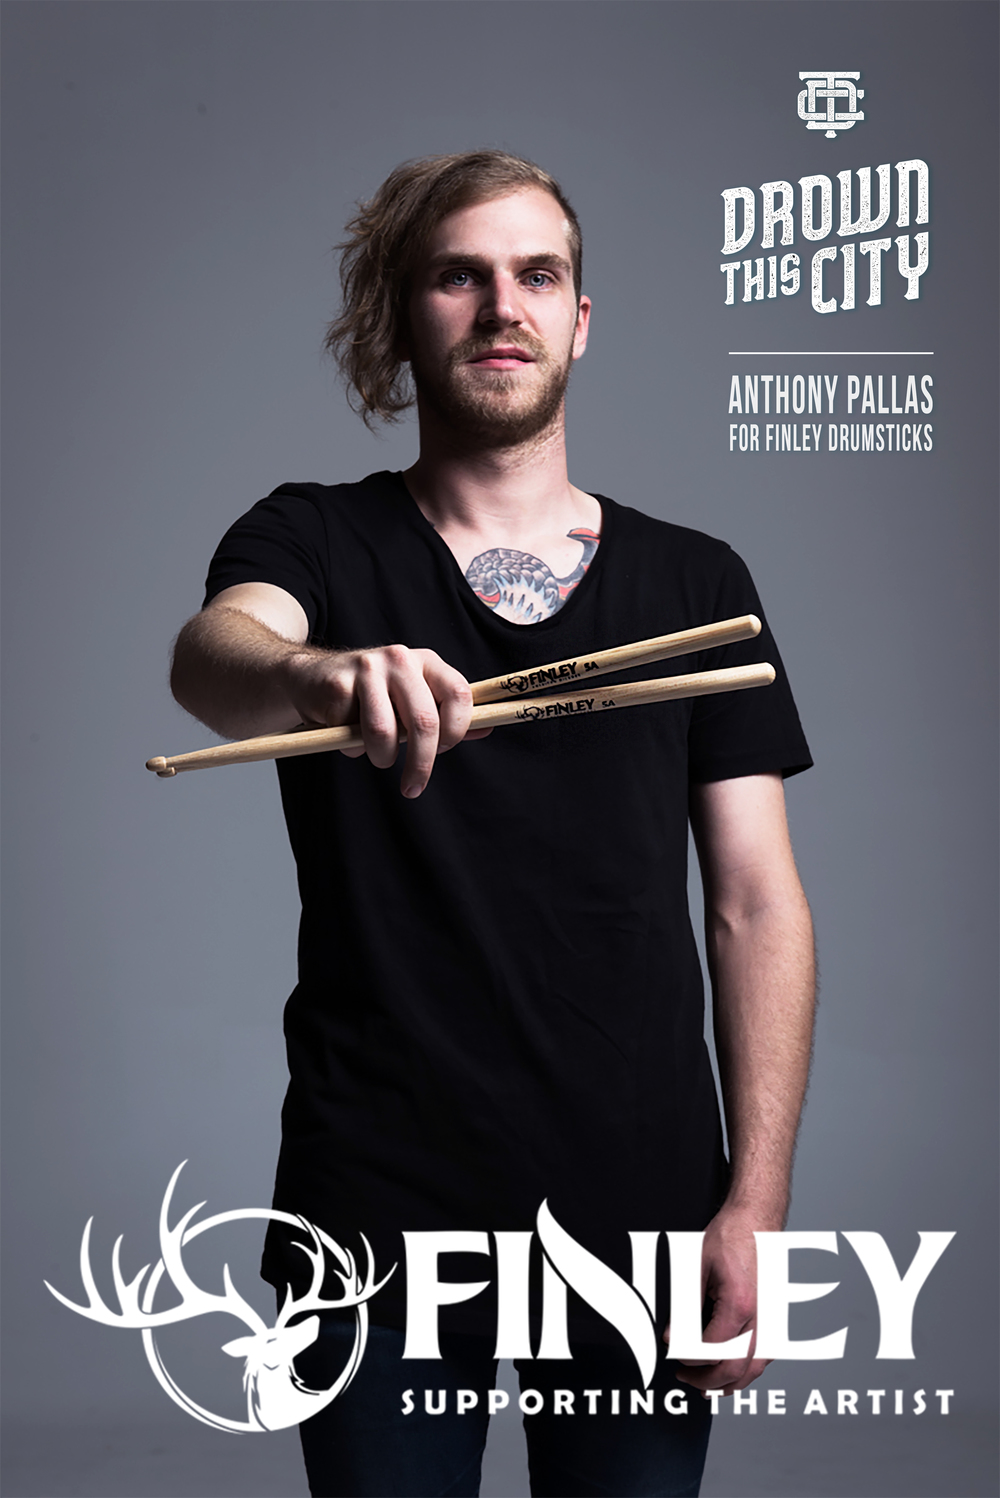 Anthony Pallas is now endorsed by Finley Drumsticks! Read the official release here: https://www.facebook.com/finleymusicaustralia/